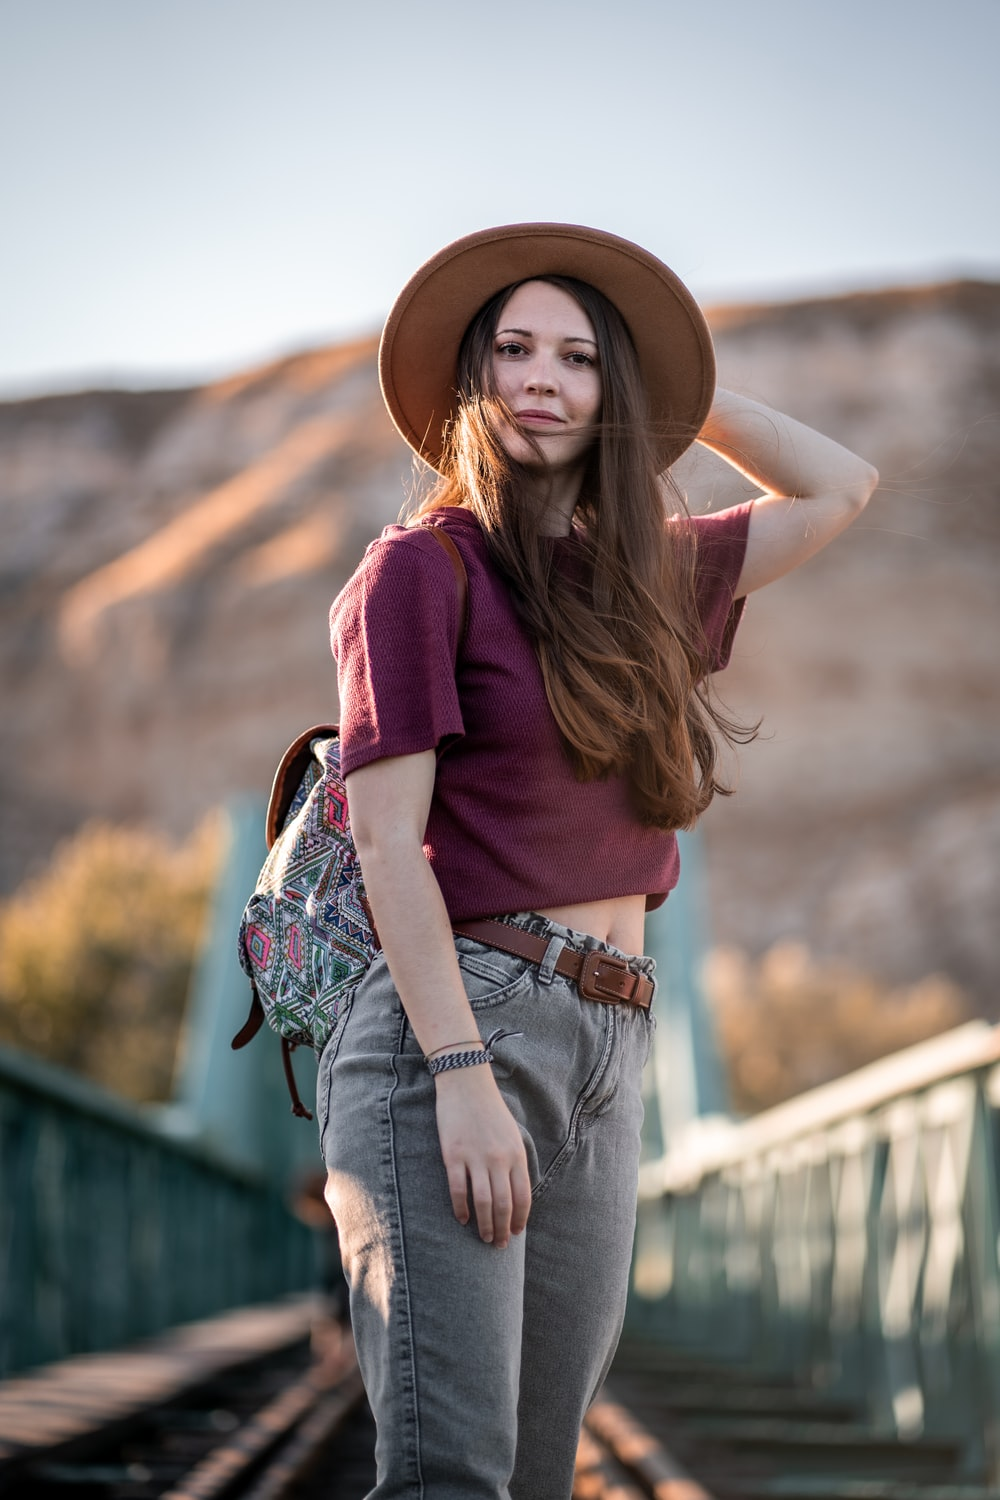 woman in red shirt and blue denim jeans wearing brown hat